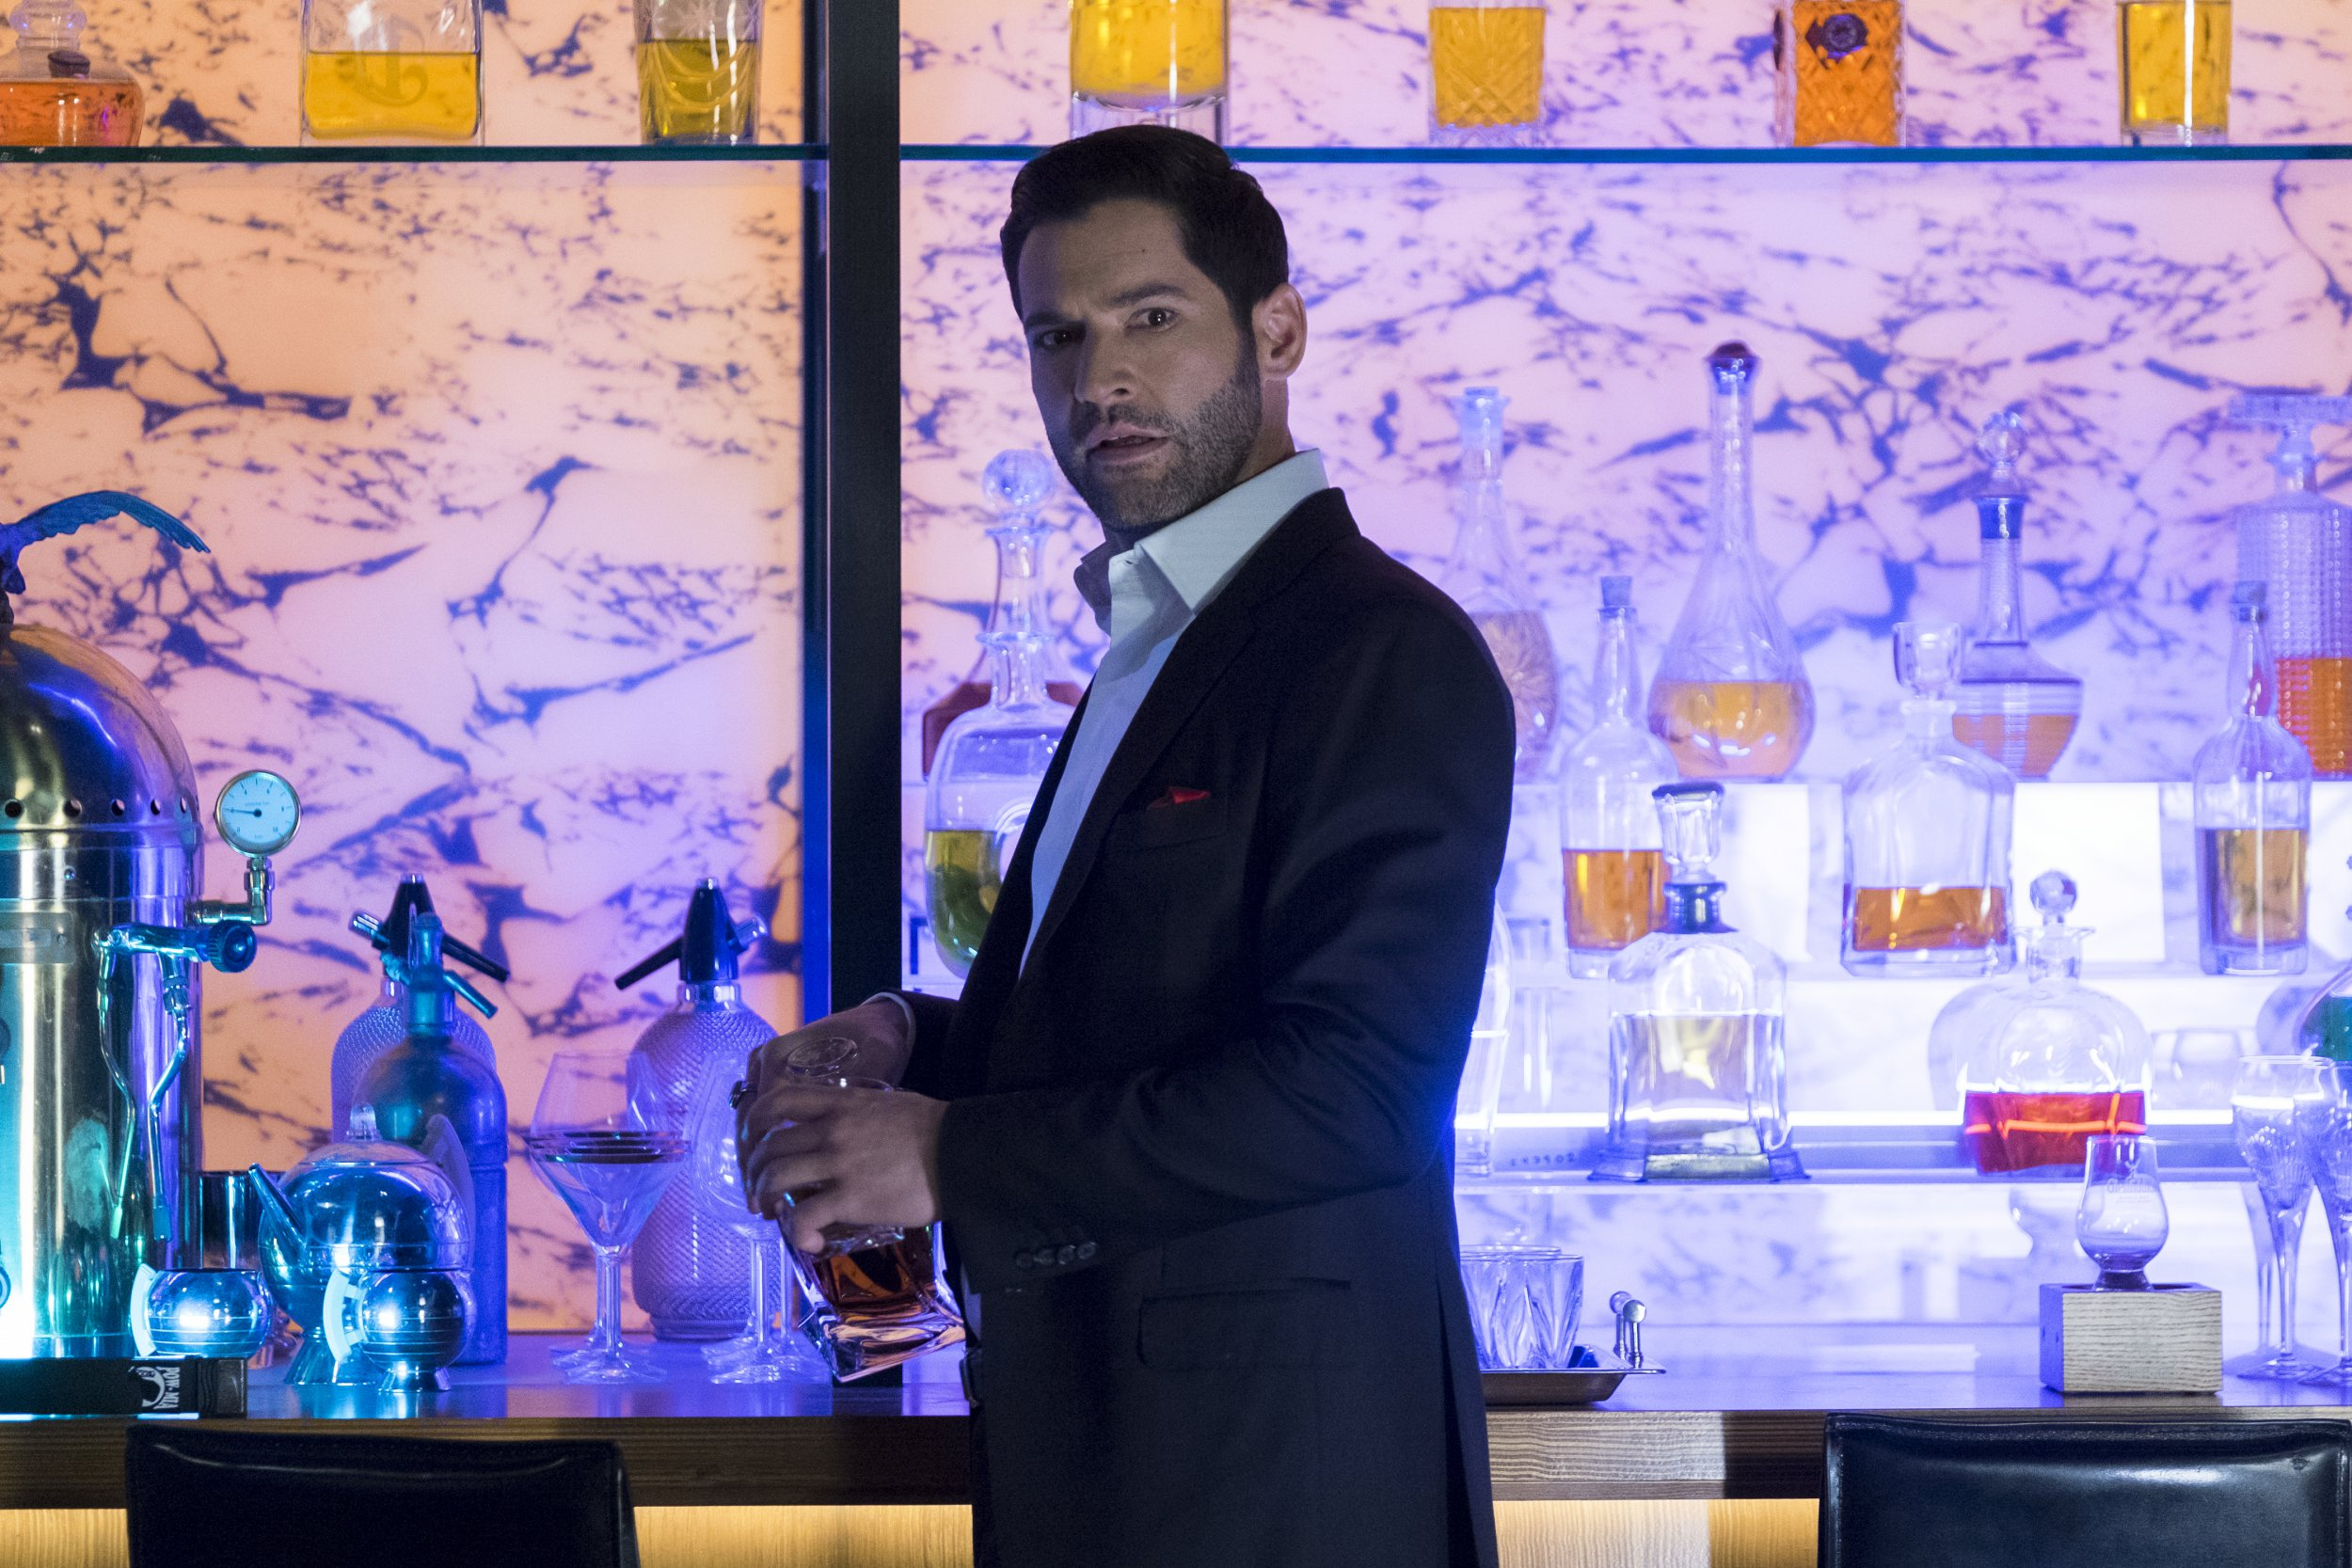 Lucifer is the most binged-watched show on Netflix, so we're almost definitely getting a season 5